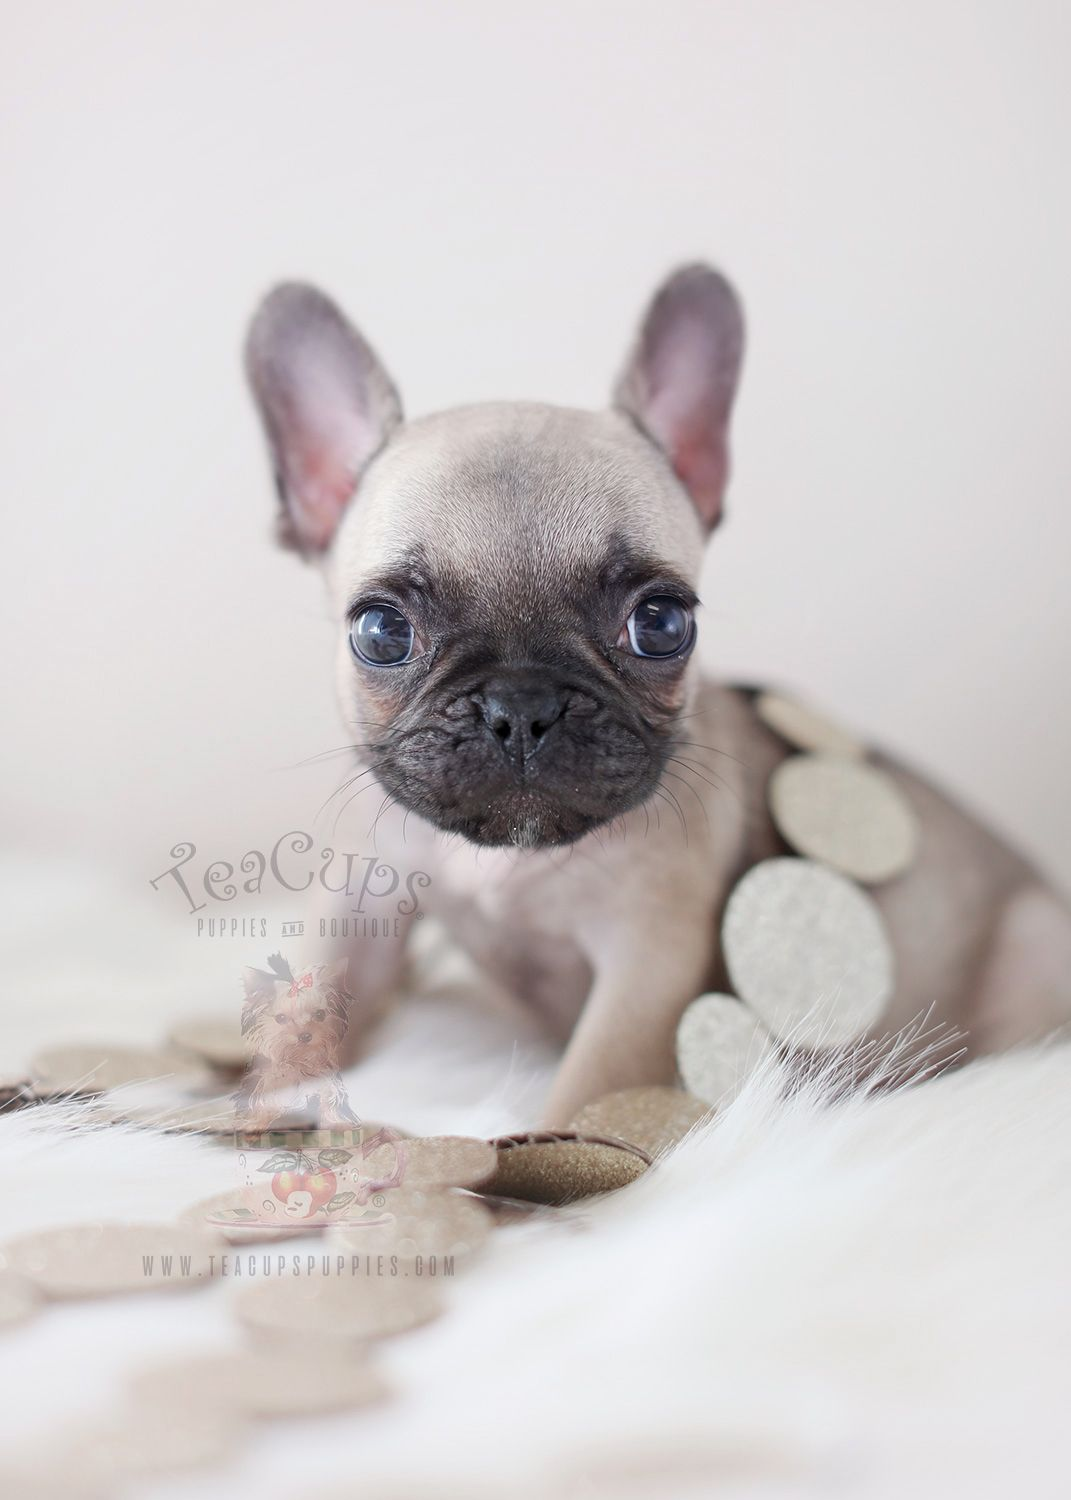 Tiny French Bulldog Puppy 382 For Sale By Teacup Puppies Bulldog Puppies Teacup Puppies French Bulldog Puppies